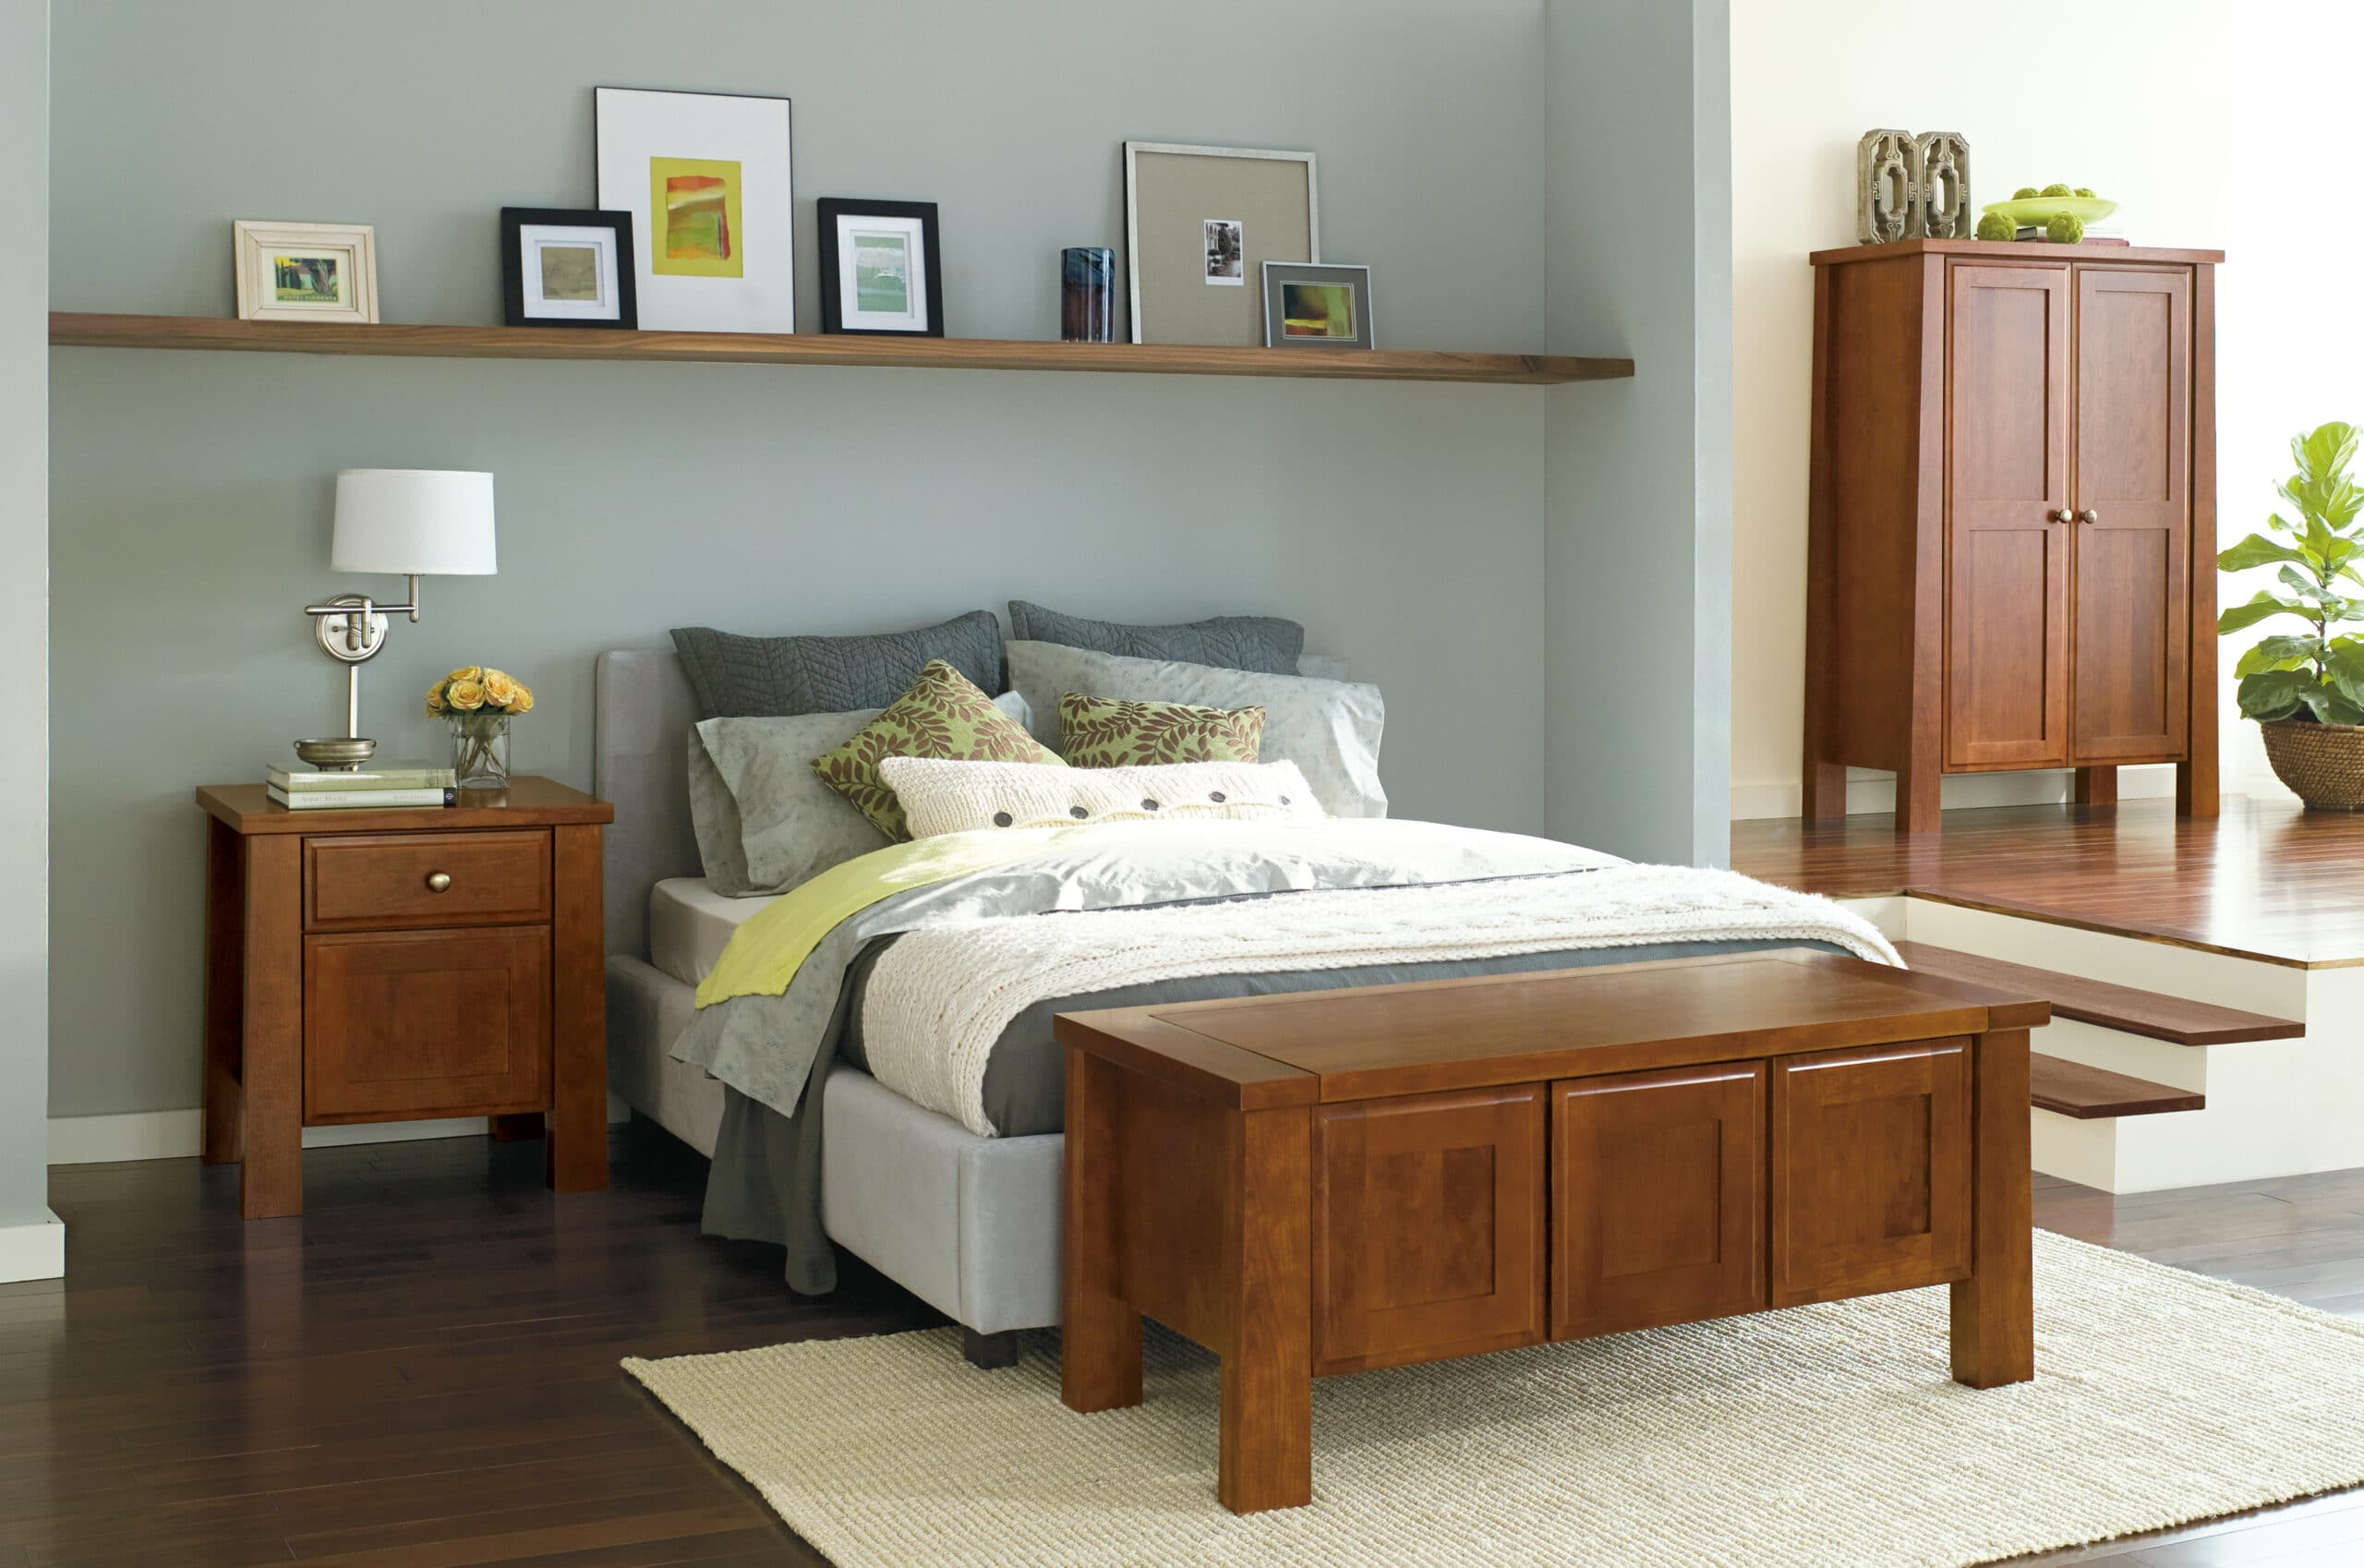 Types of Storage Solutions for Bedrooms